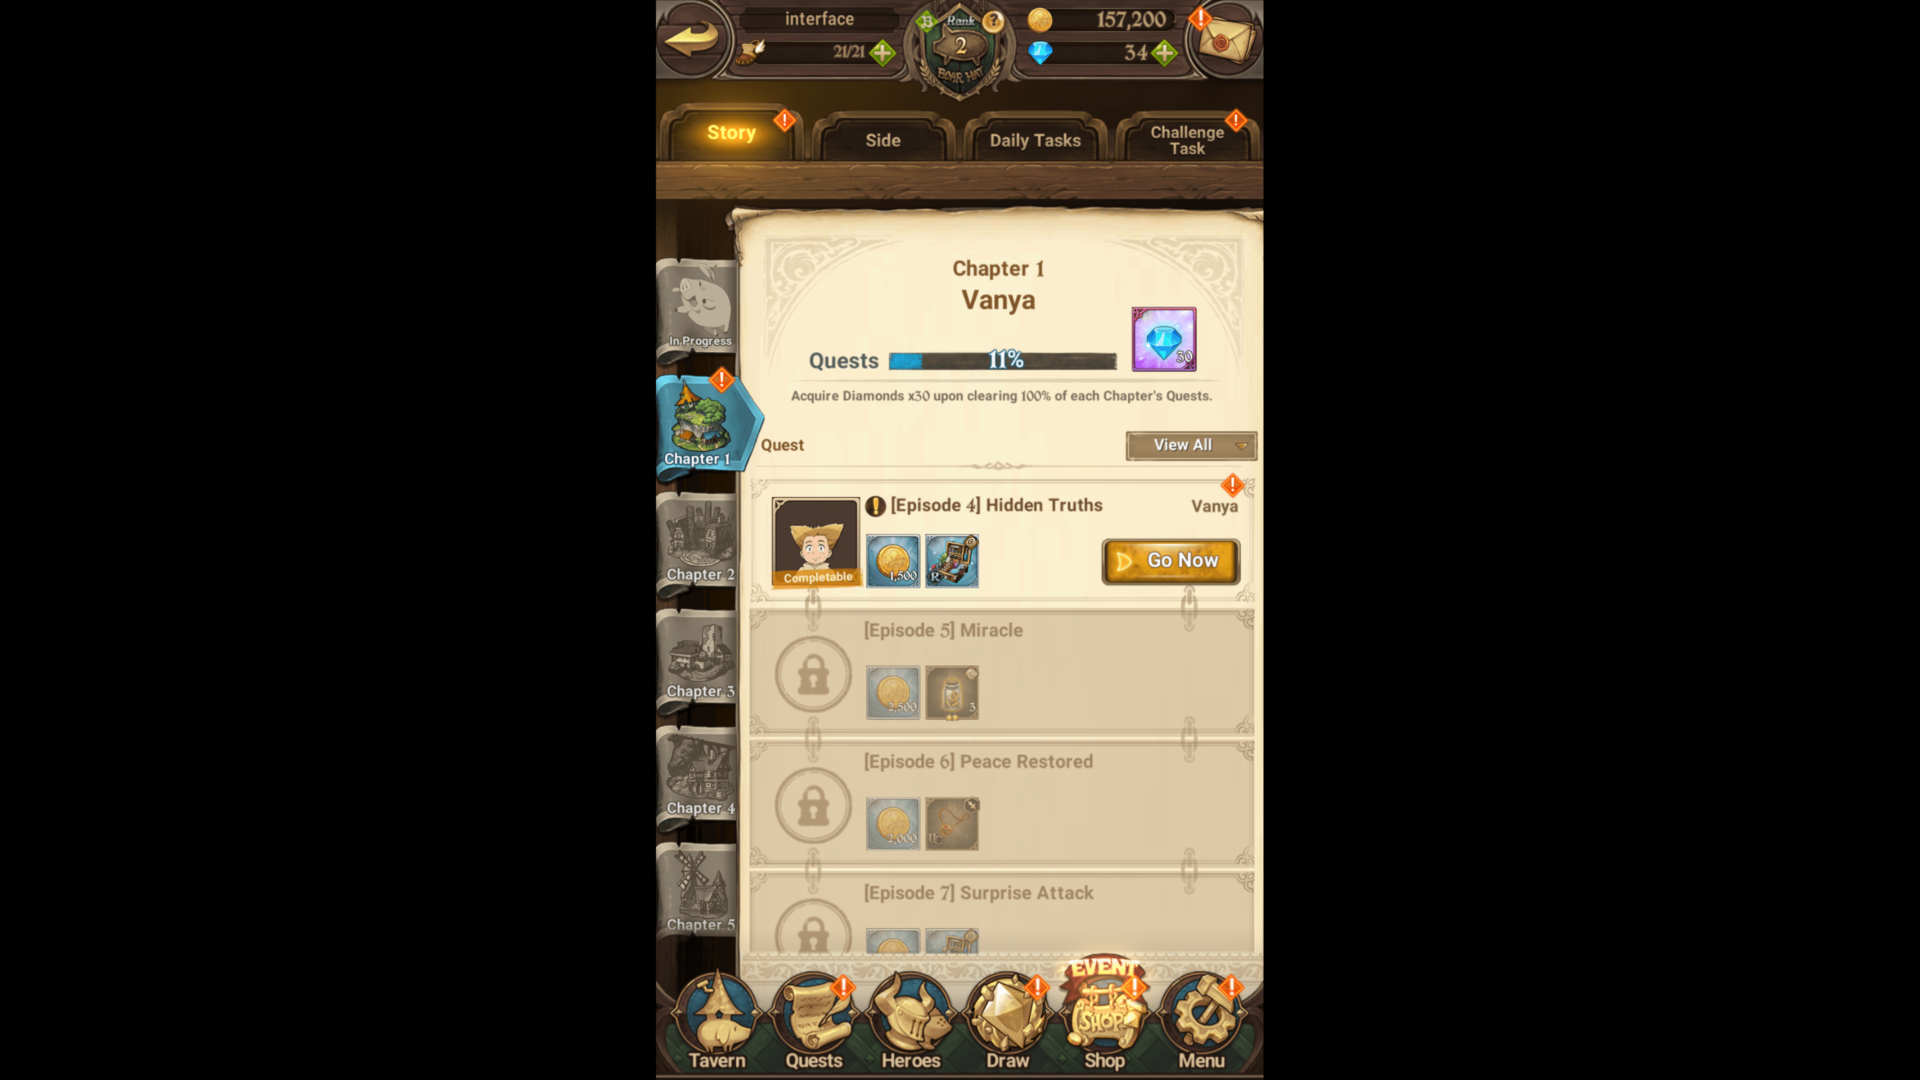 Chapter quests screenshot of The Seven Deadly Sins: Grand Cross video game interface.